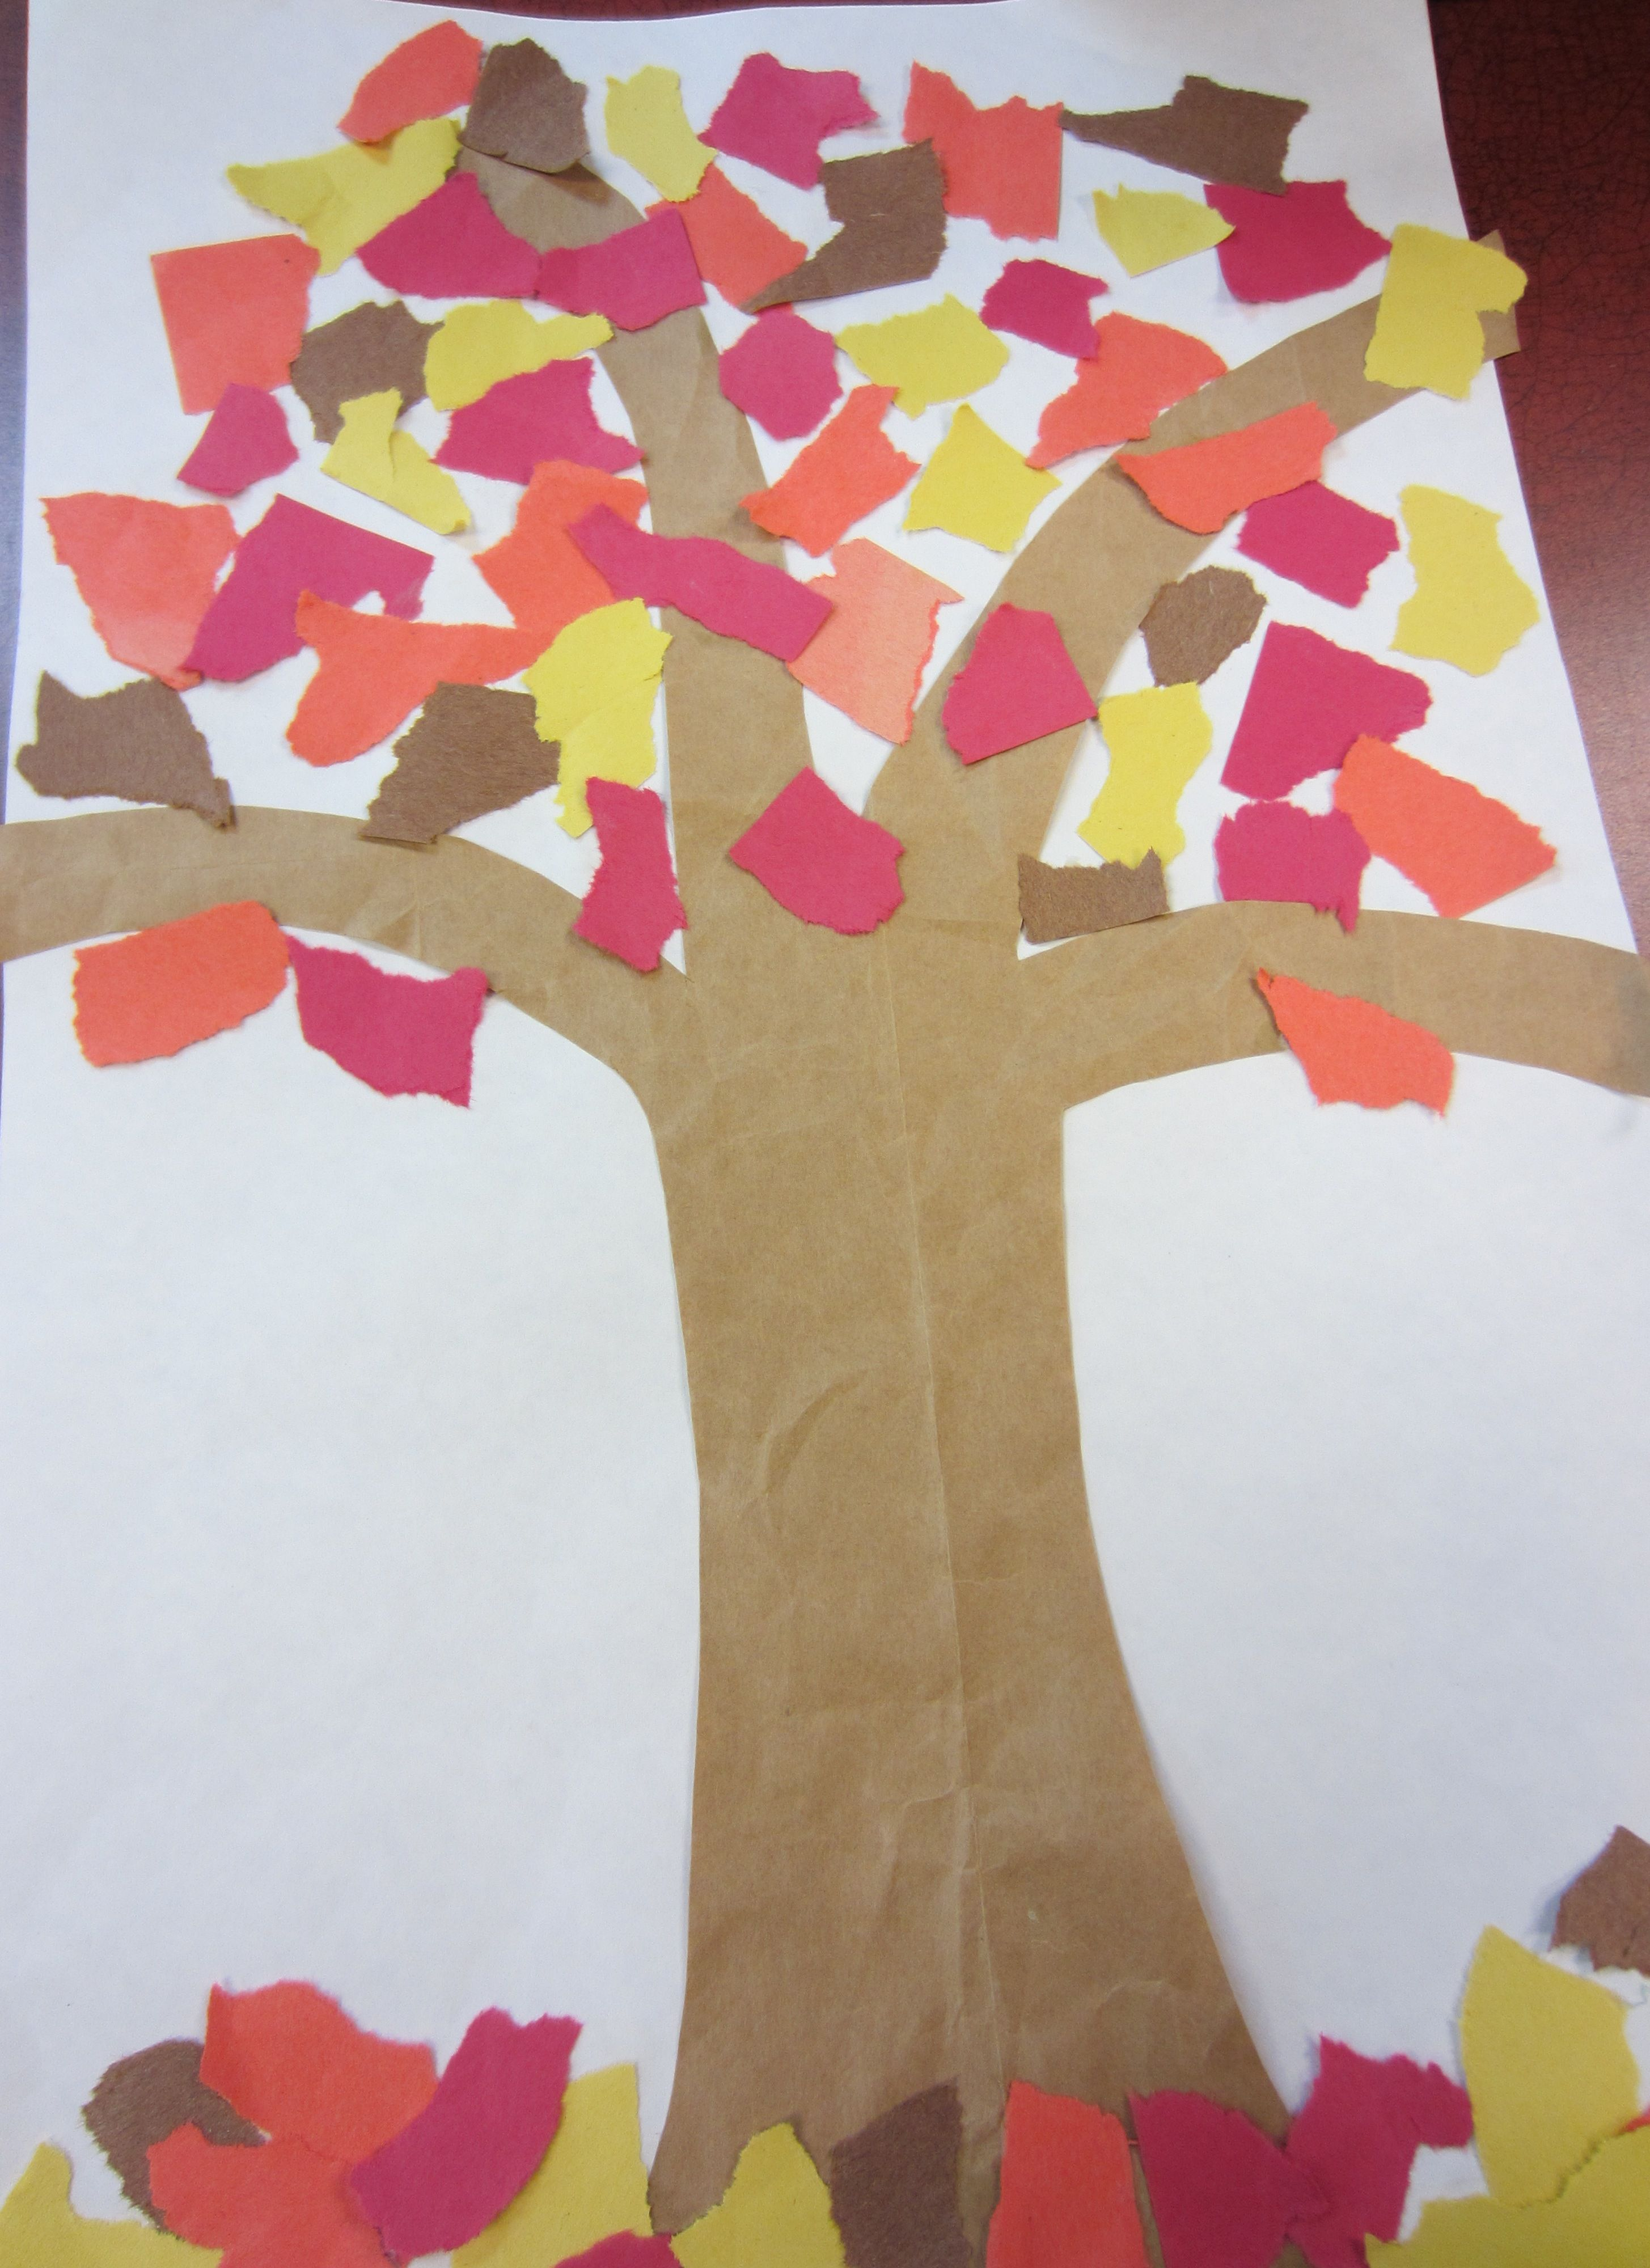 Tear fall colored construction paper into small pieces and glue - Glue It Onto A Large Sheet Of Construction Paper Create Leaves By Tearing Autumn Colored Construction Paper Into Pieces Glue The Torn